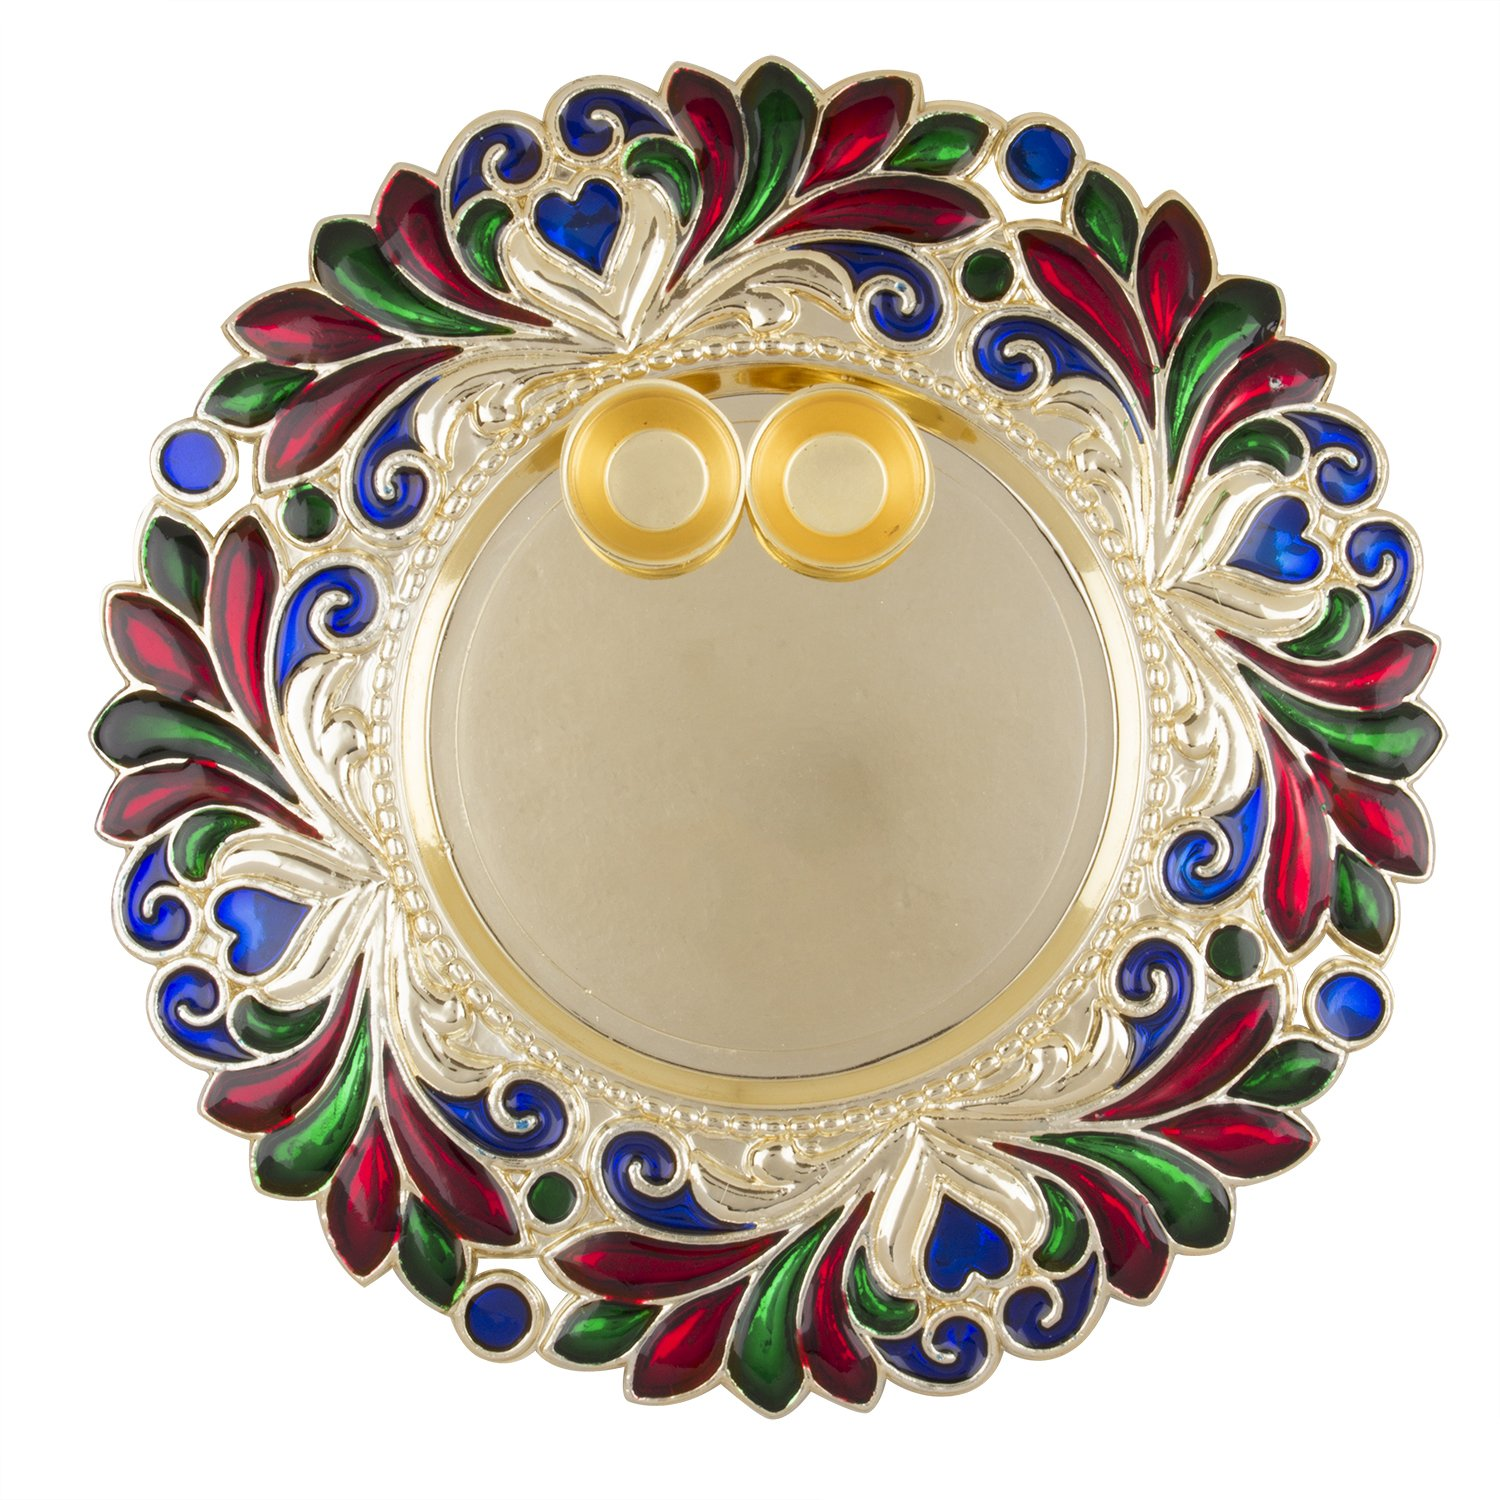 Decorative Plates Buy Decorative Plates line at Low Prices in